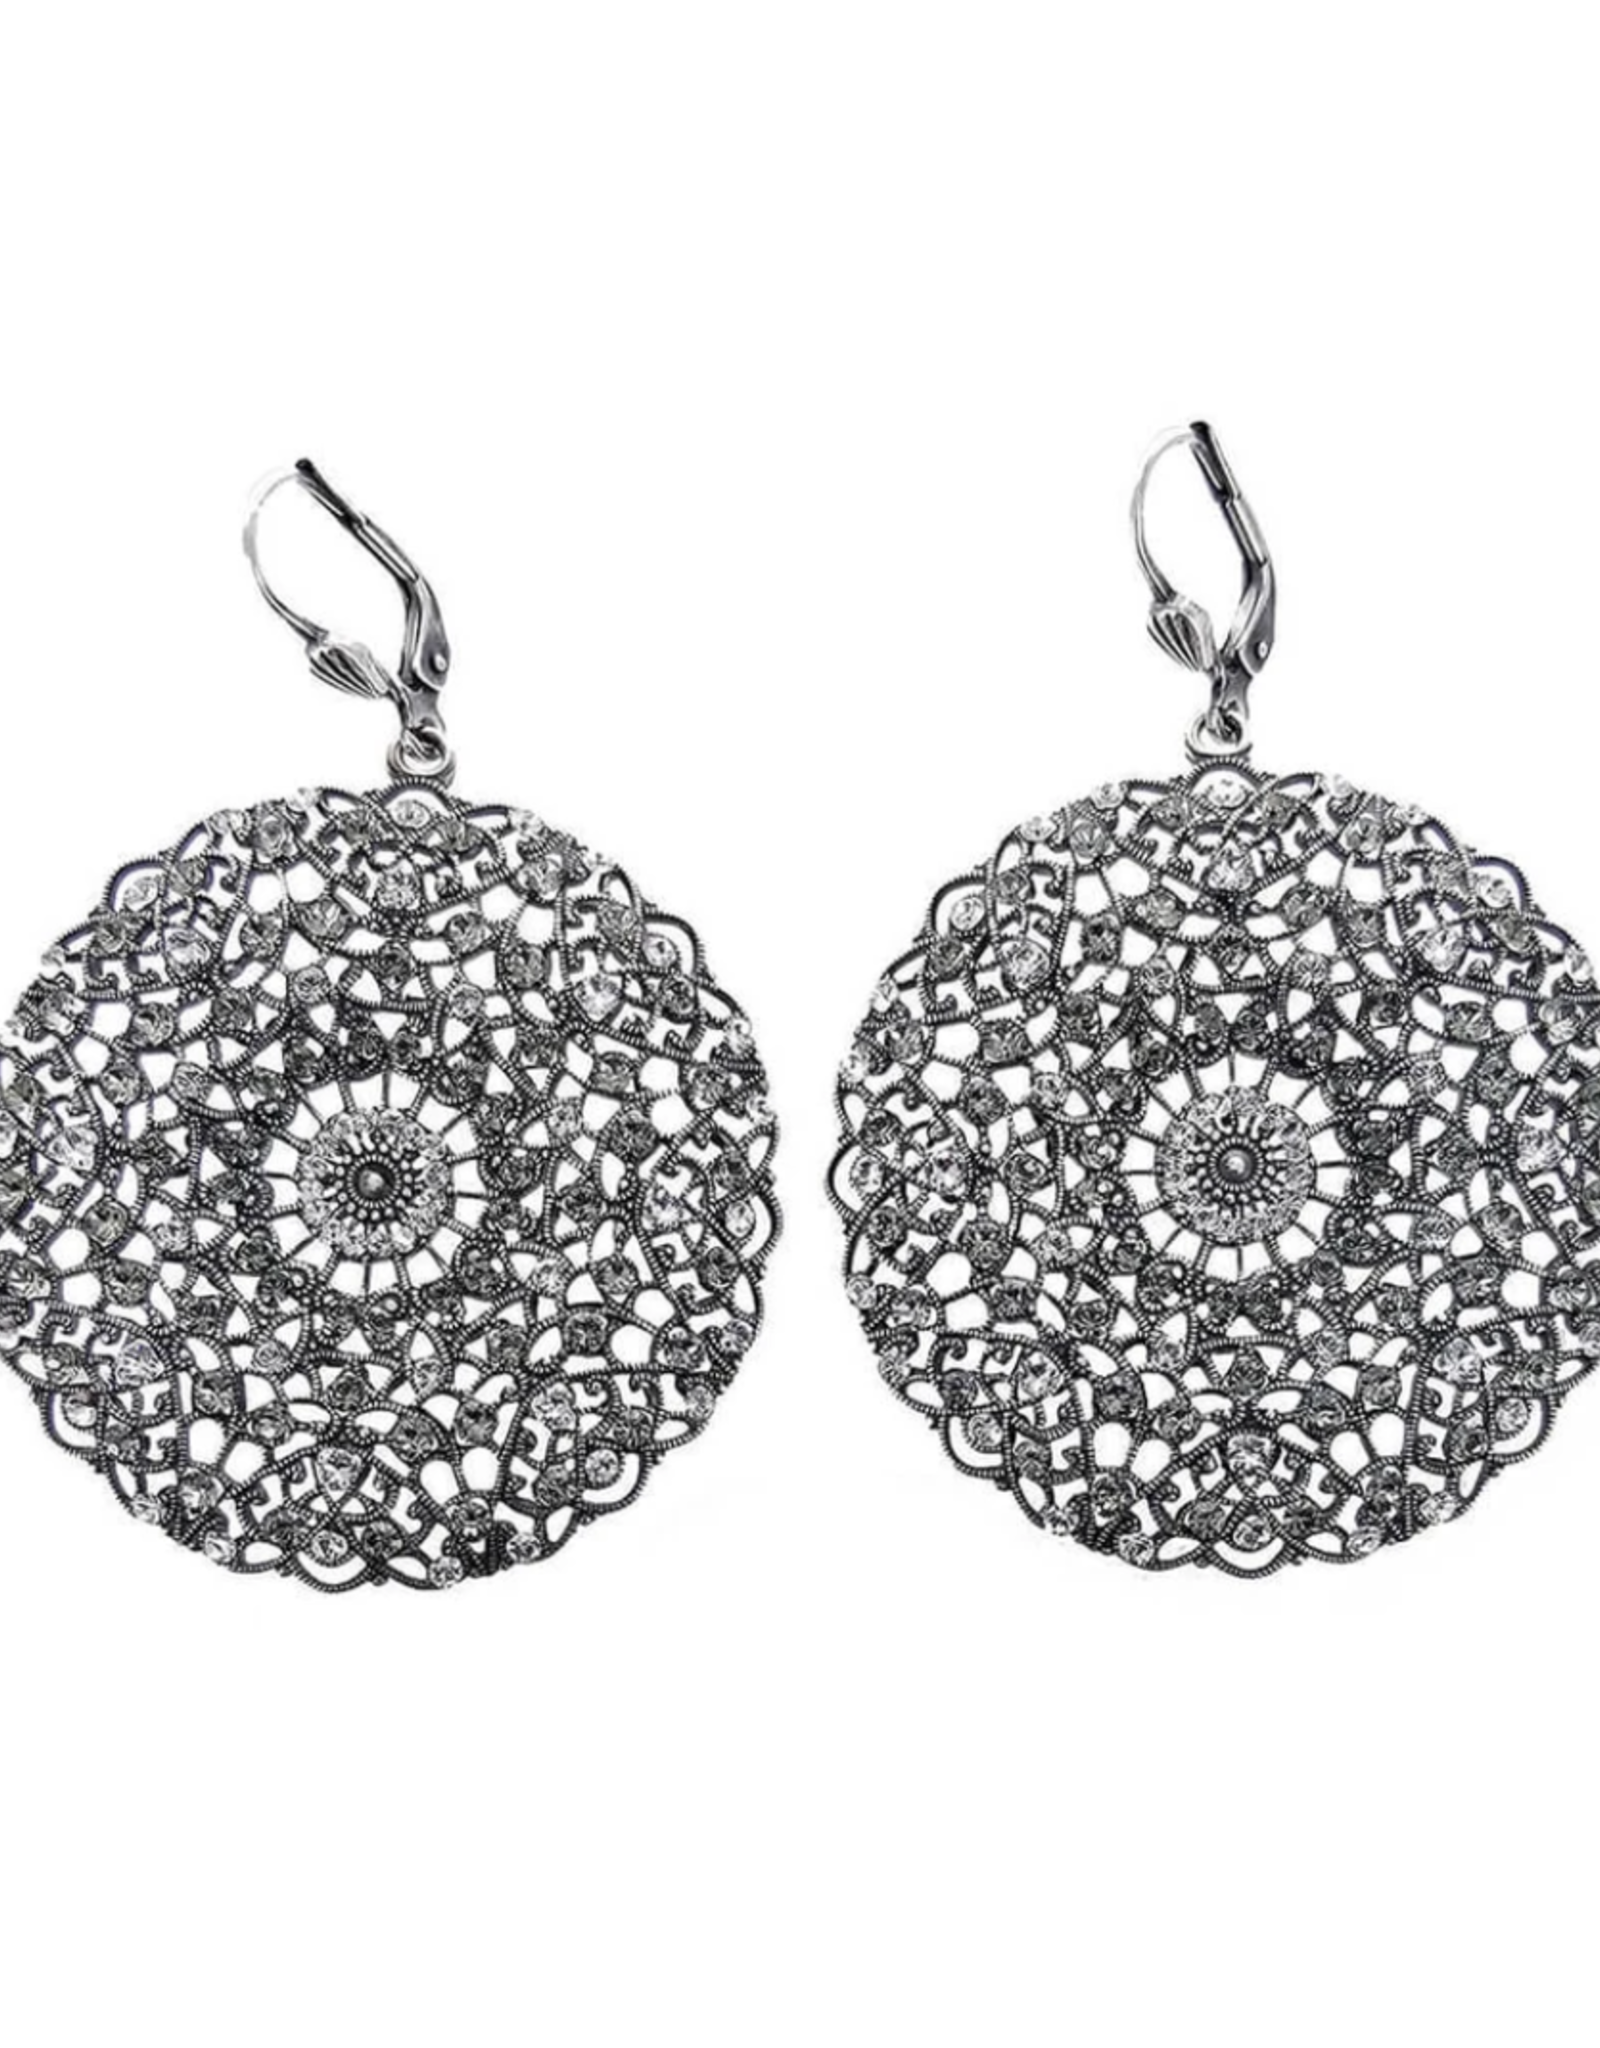 EARRING ROUND FILIGREE LARGE SILVER